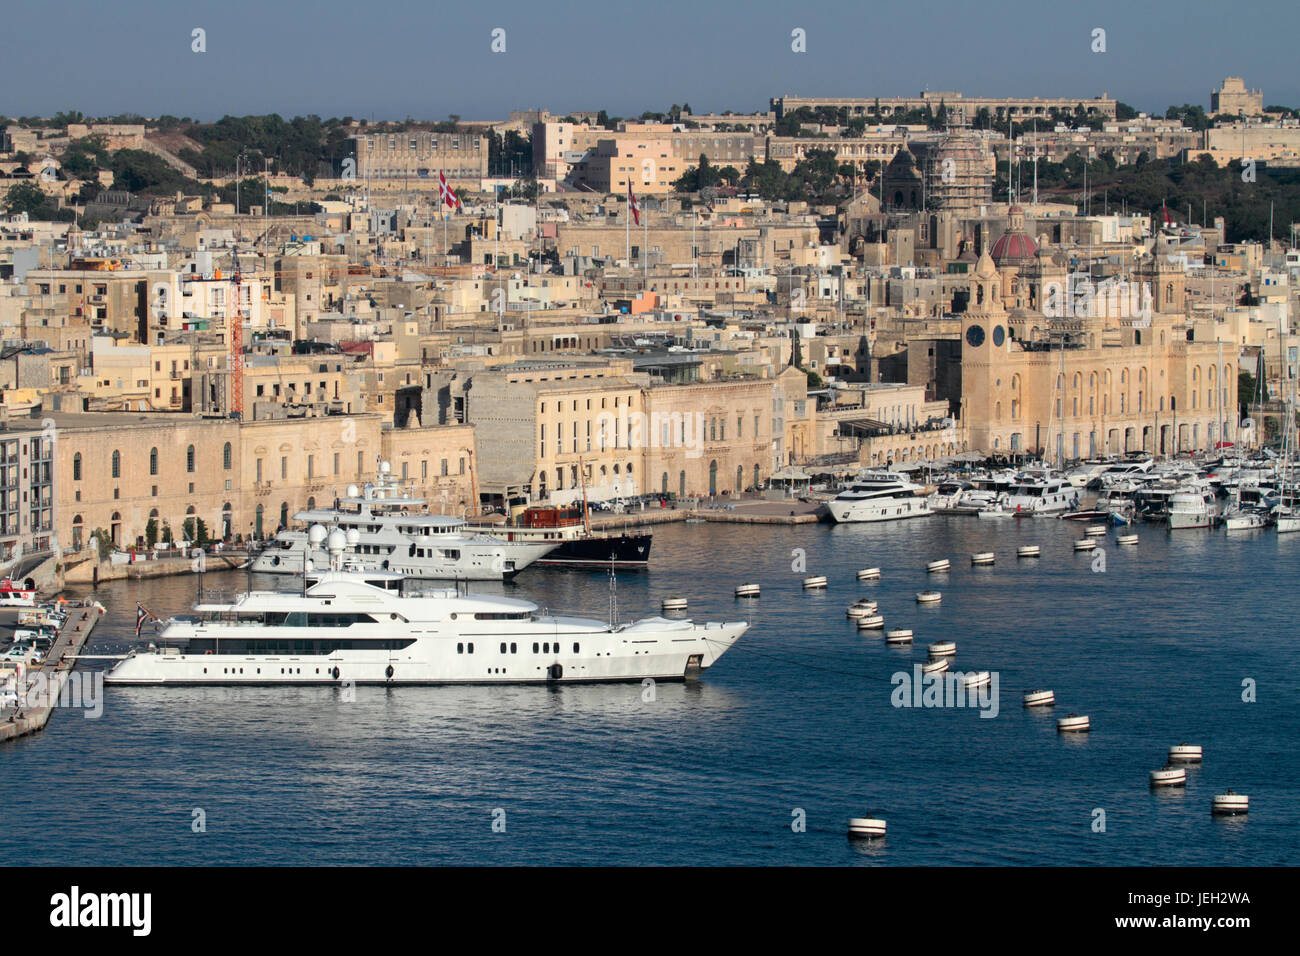 Grand Harbour Yacht Marina, Birgu, Malta, with the yachts Maria and Pride closest to the camera - Stock Image